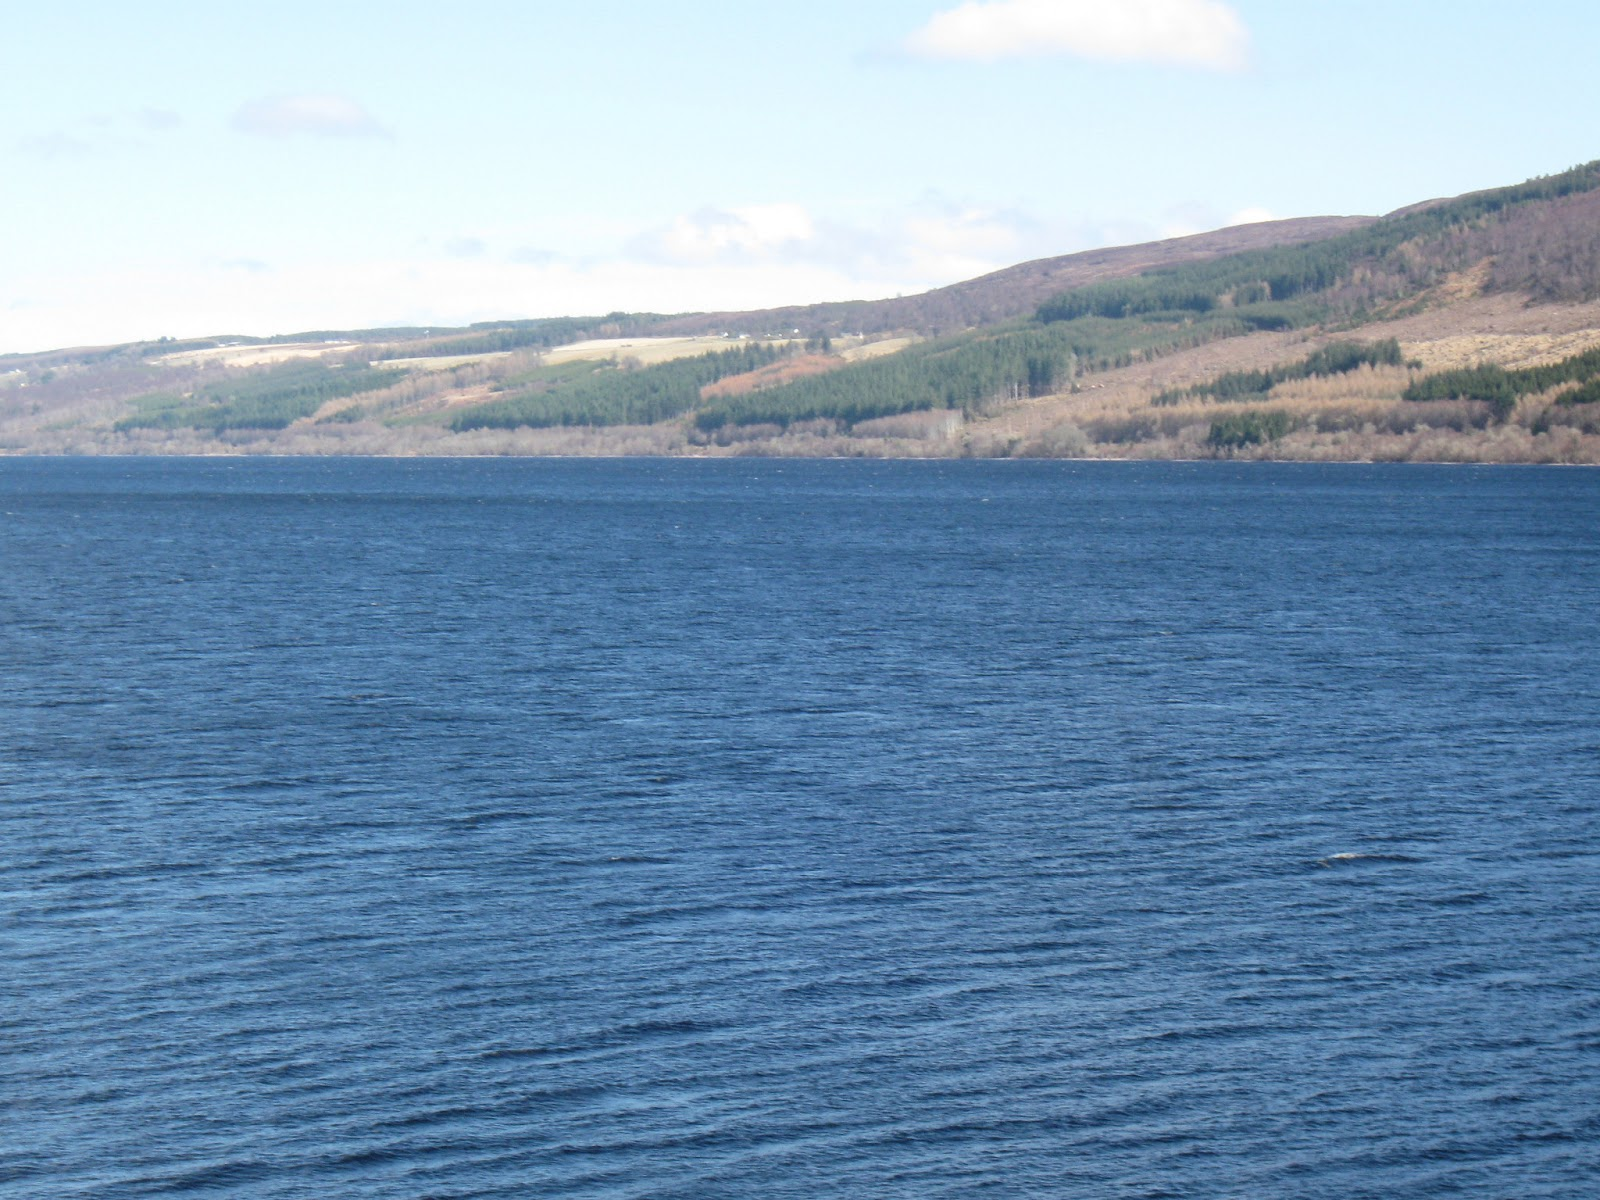 Loch Ness Monster Sightings 2014 Loch ness monster: